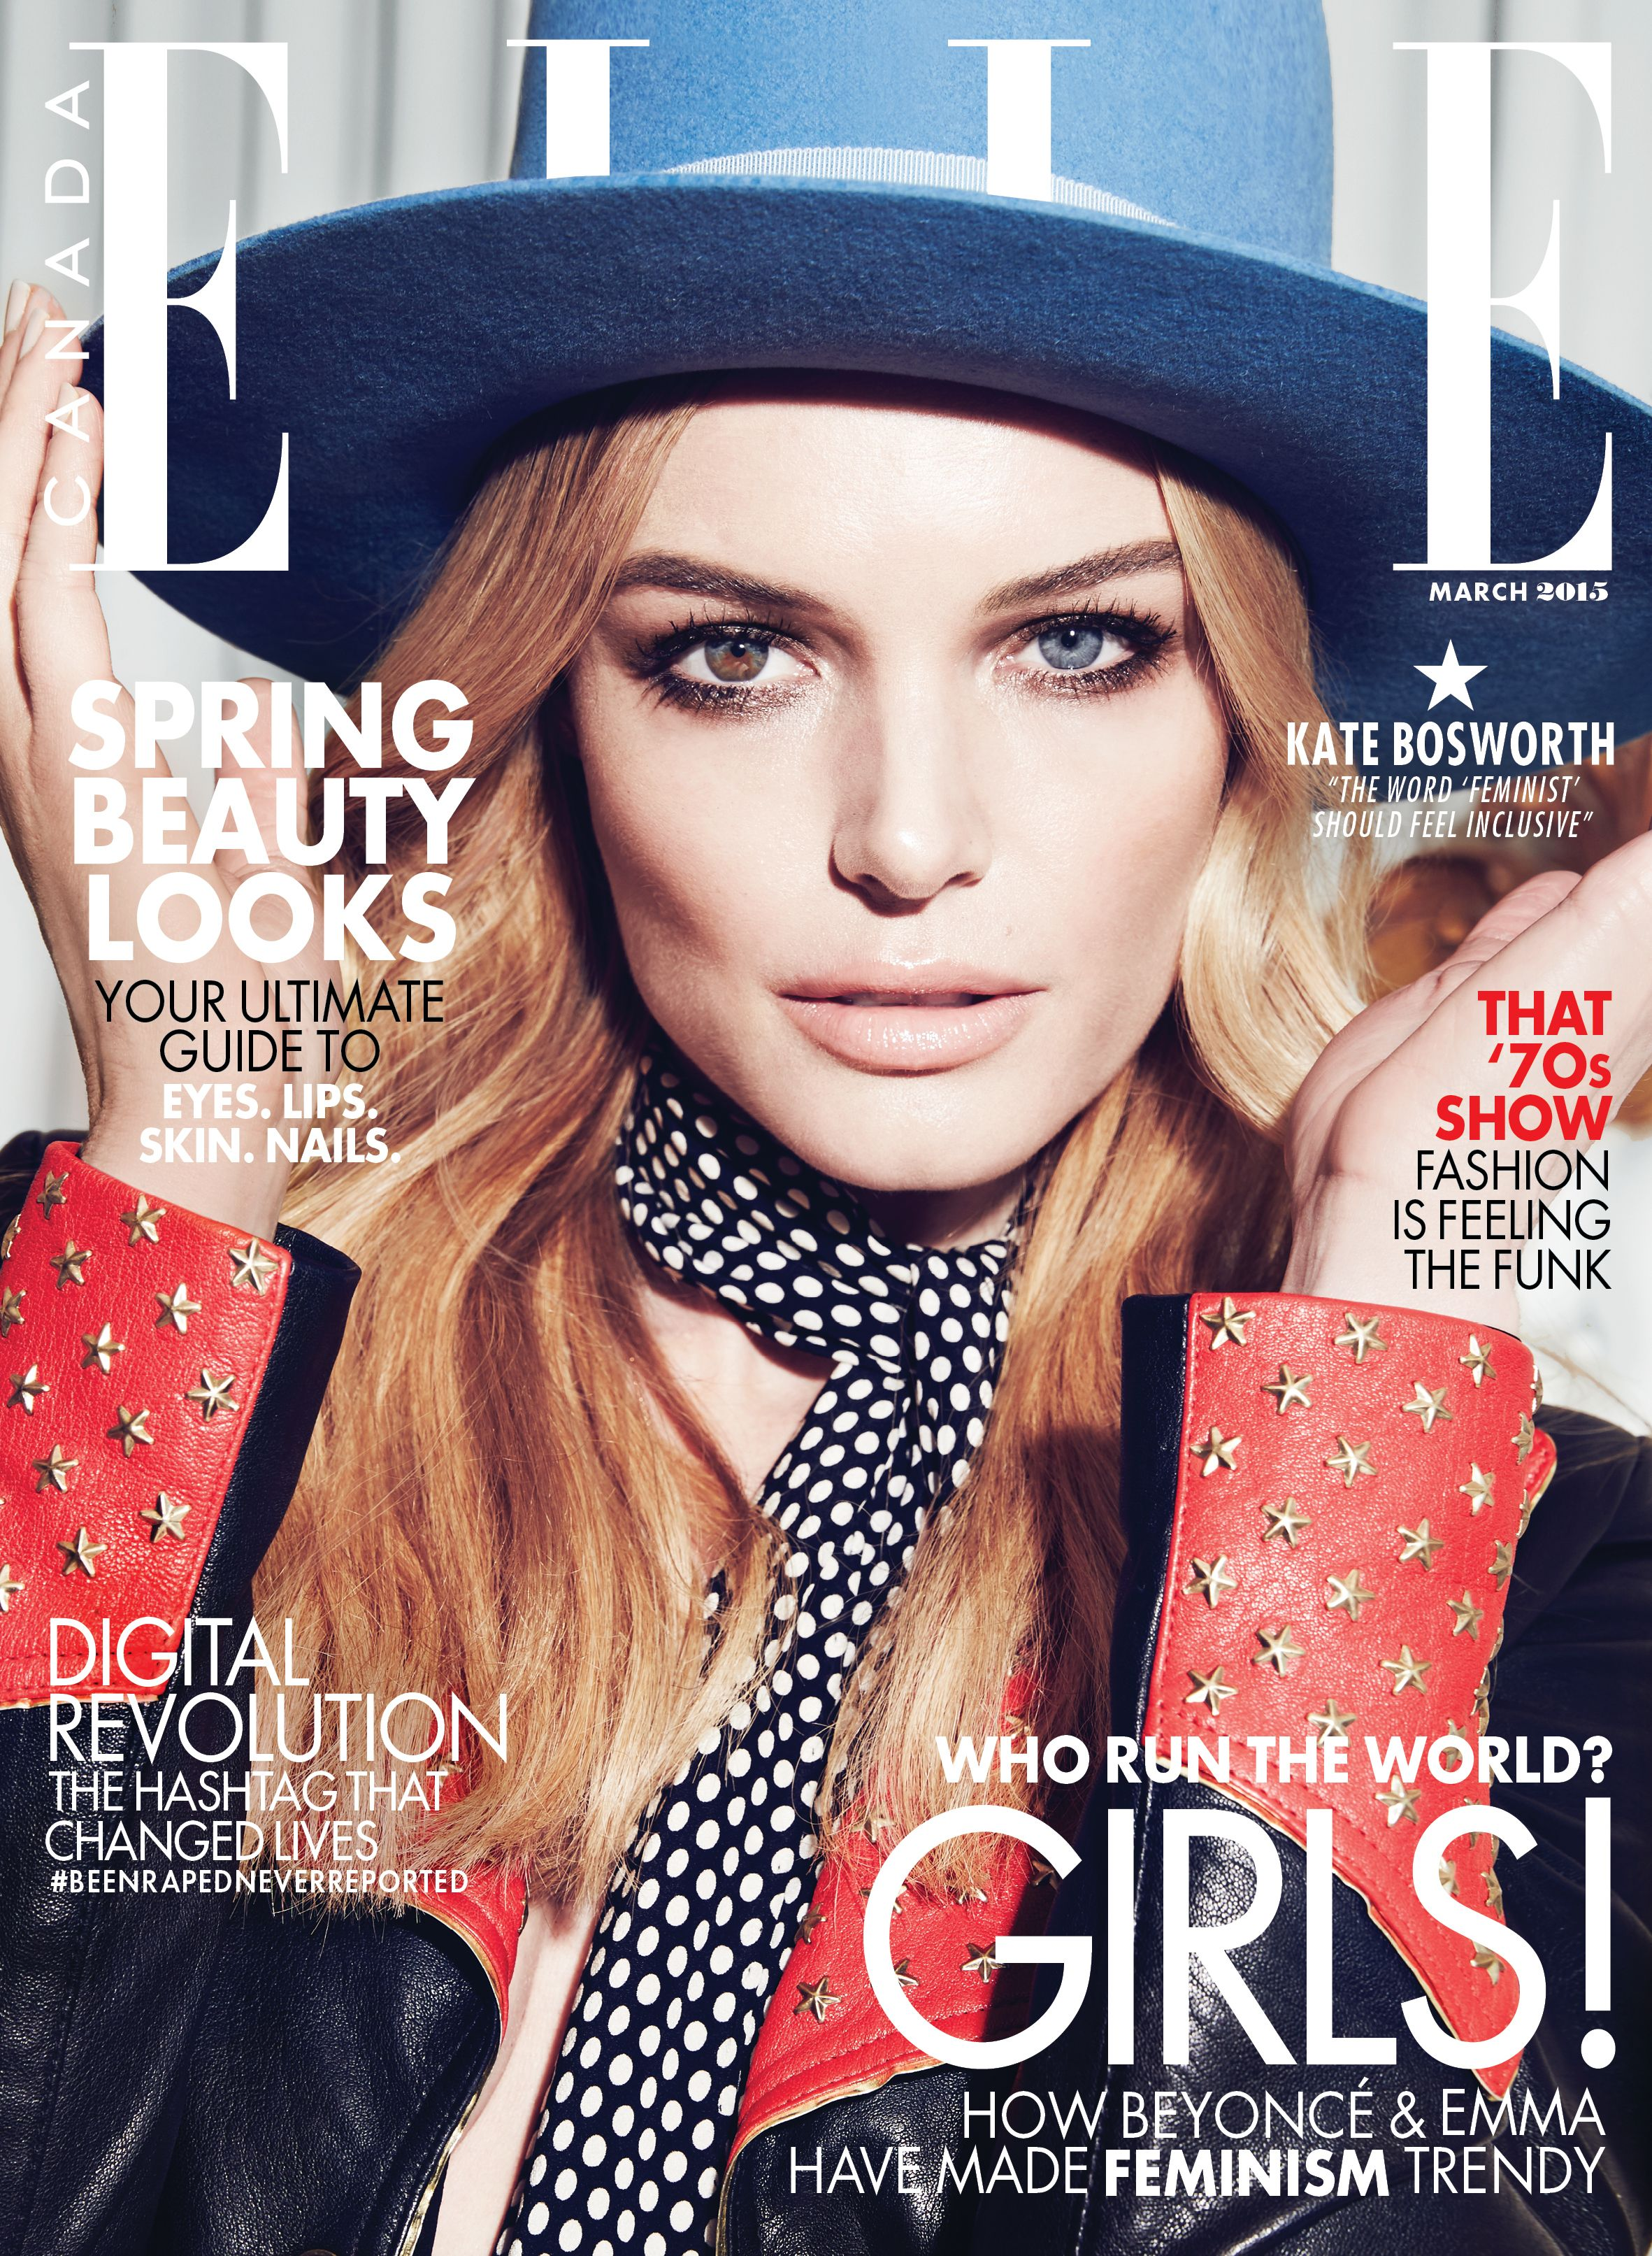 Kate Bosworth is the cover girl for ELLE Canada's March 2015 issue. ART DIRECTOR Brittany Eccles PHOTOGRAPHER Max Abadian STYLIST Juliana Schiavinatto HAIR Bridget Brager MAKEUP Melanie Inglessis